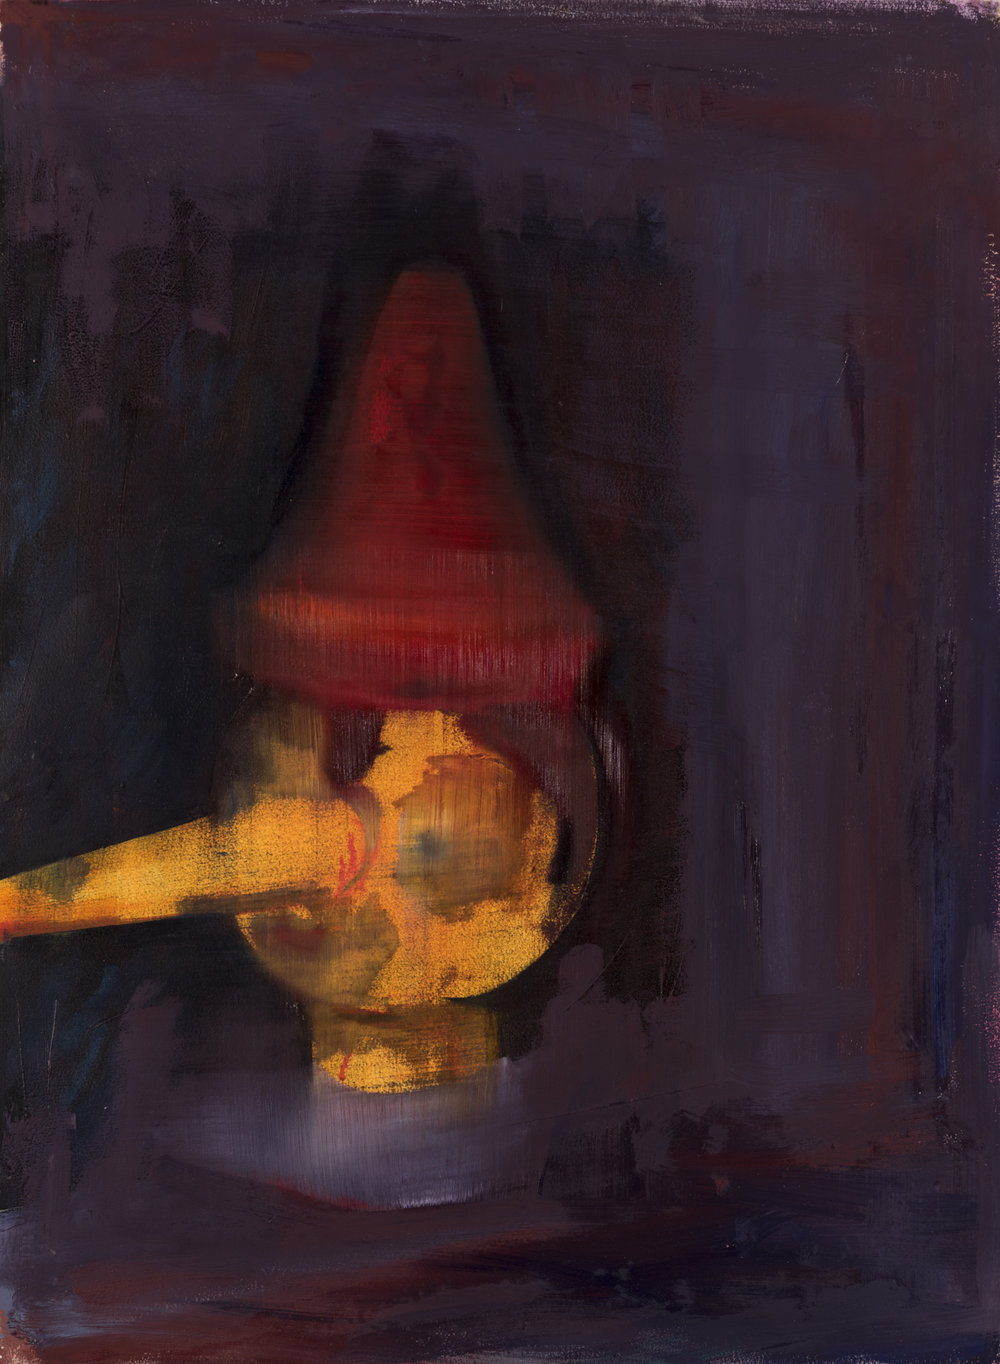 Night Portrait - Pinocchio, 2016